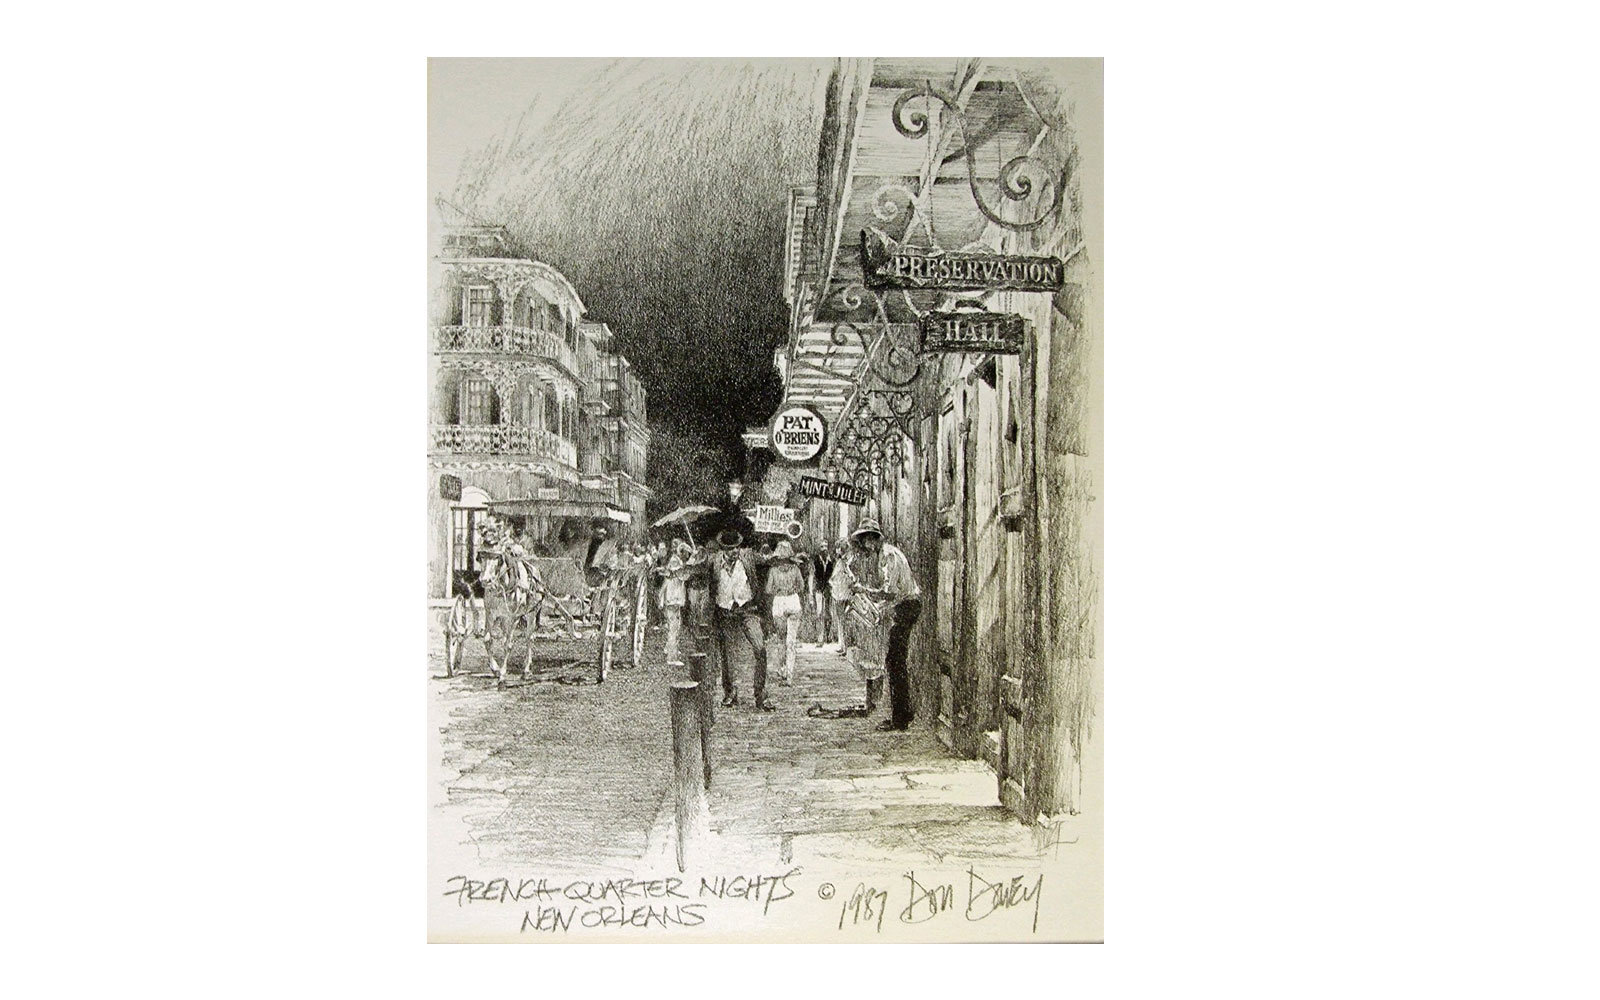 Don Davey French Quarter Nights Art Print